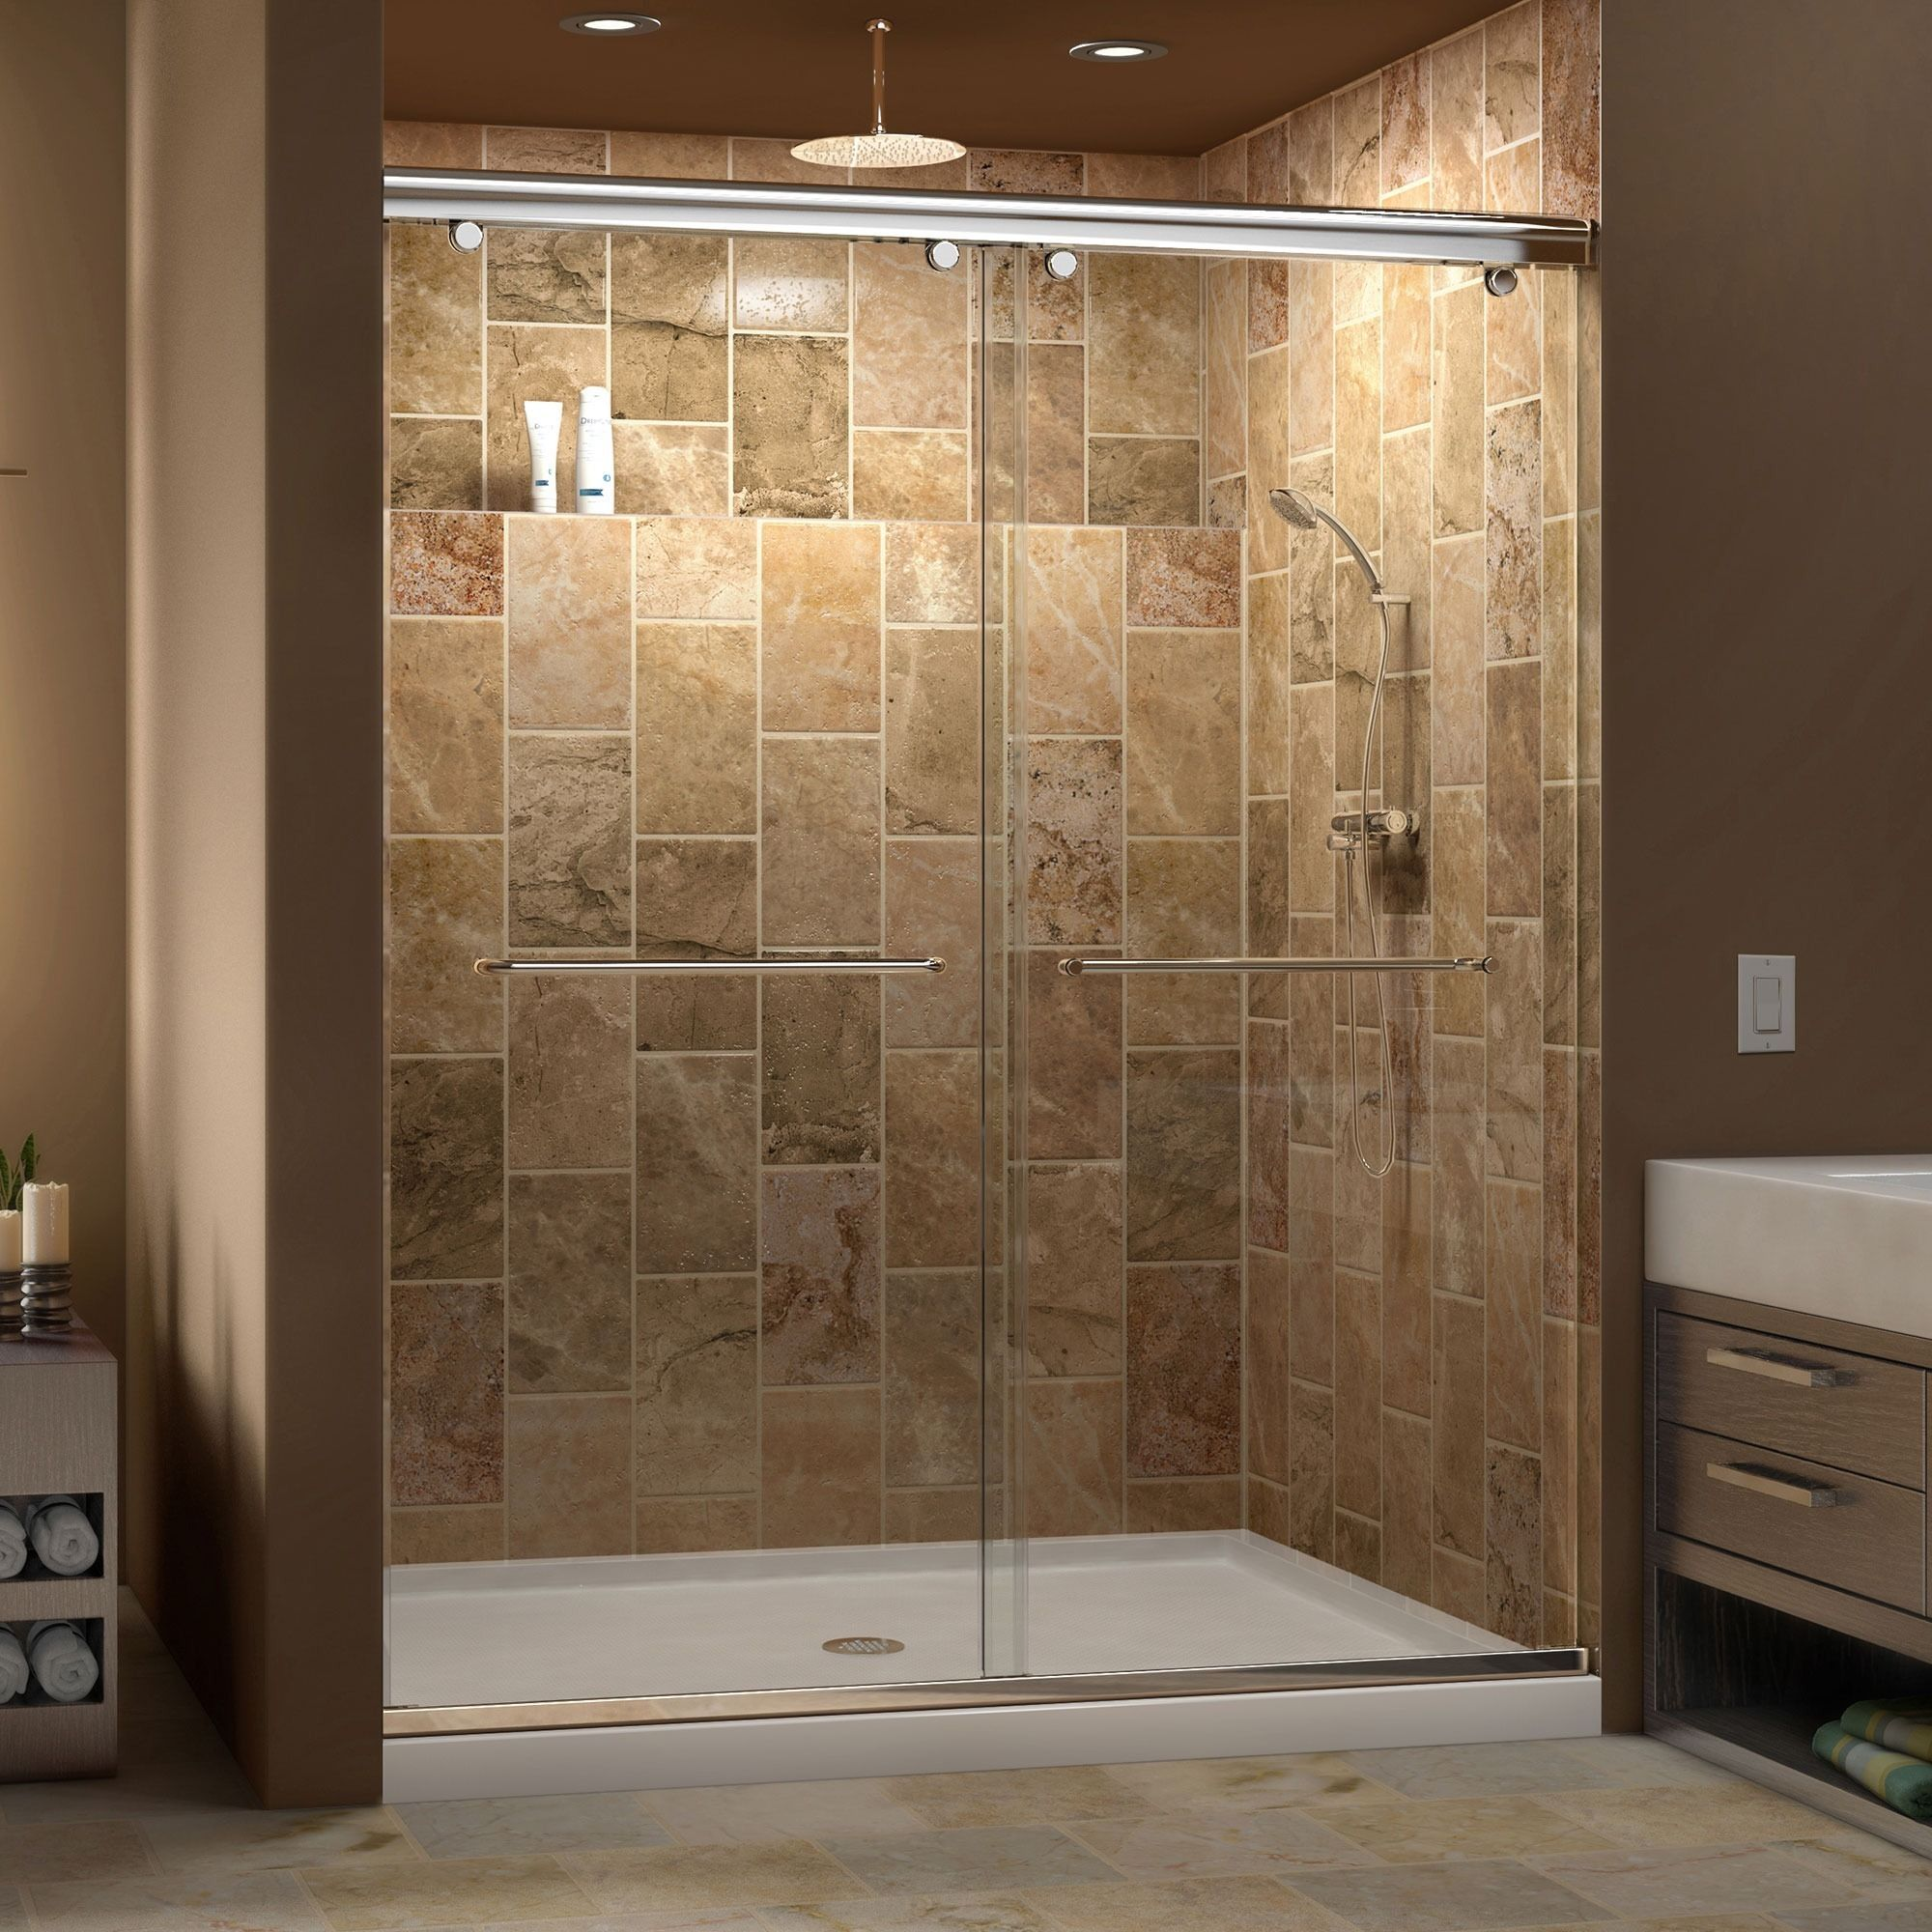 Dreamline Charisma 36 In D X 60 In W X 78 3 4 In H Bypass Sliding Shower Door And Shower Base Kit 36 X 60 Bathrooms Remodel Bypass Sliding Shower Doors Sliding Shower Door